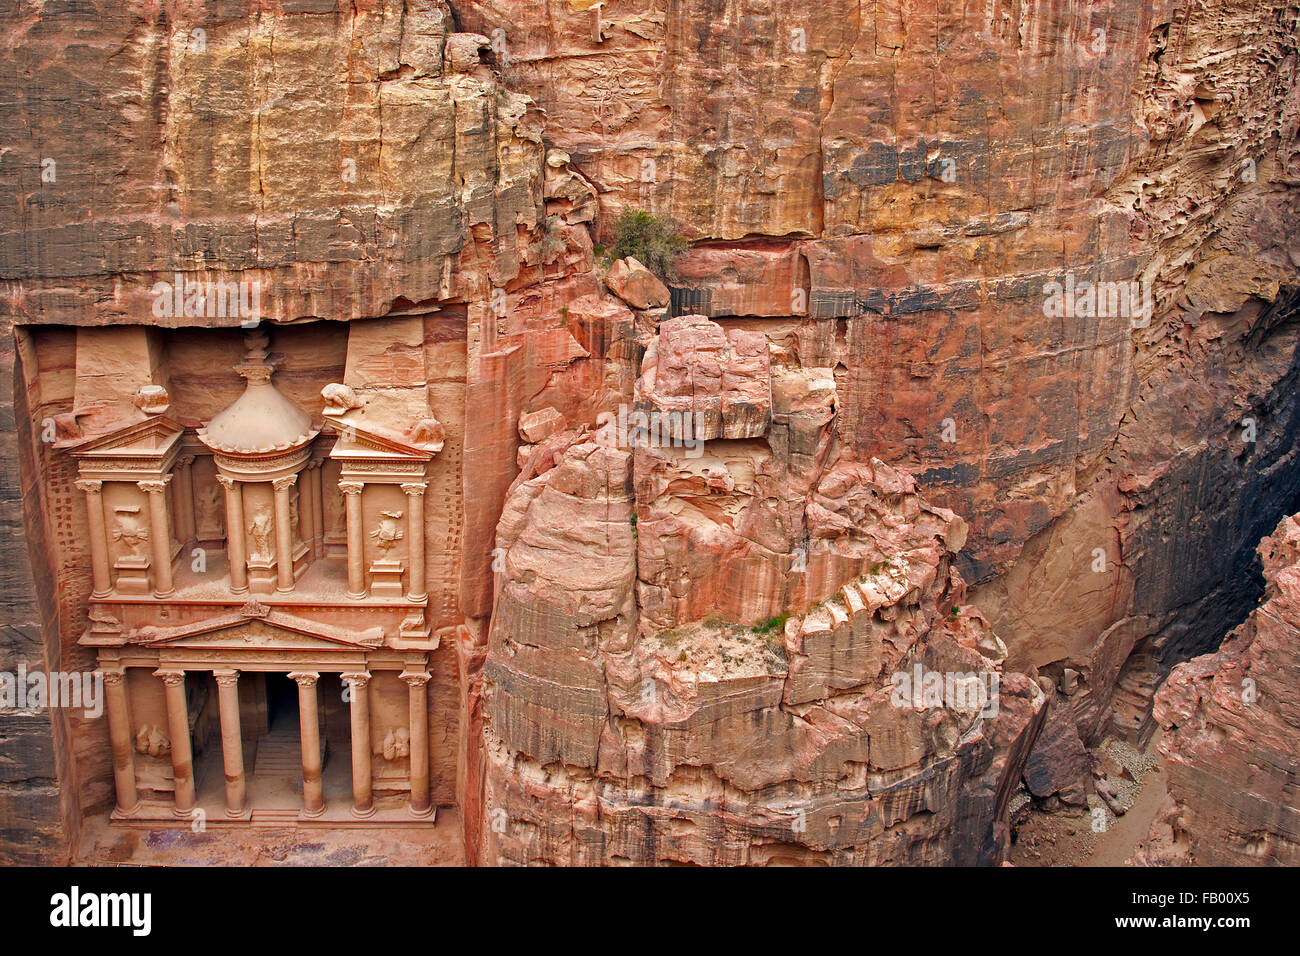 Al Khazneh / The Treasury, carved out of a sandstone rock face in the ancient city of Petra in southern Jordan - Stock Image